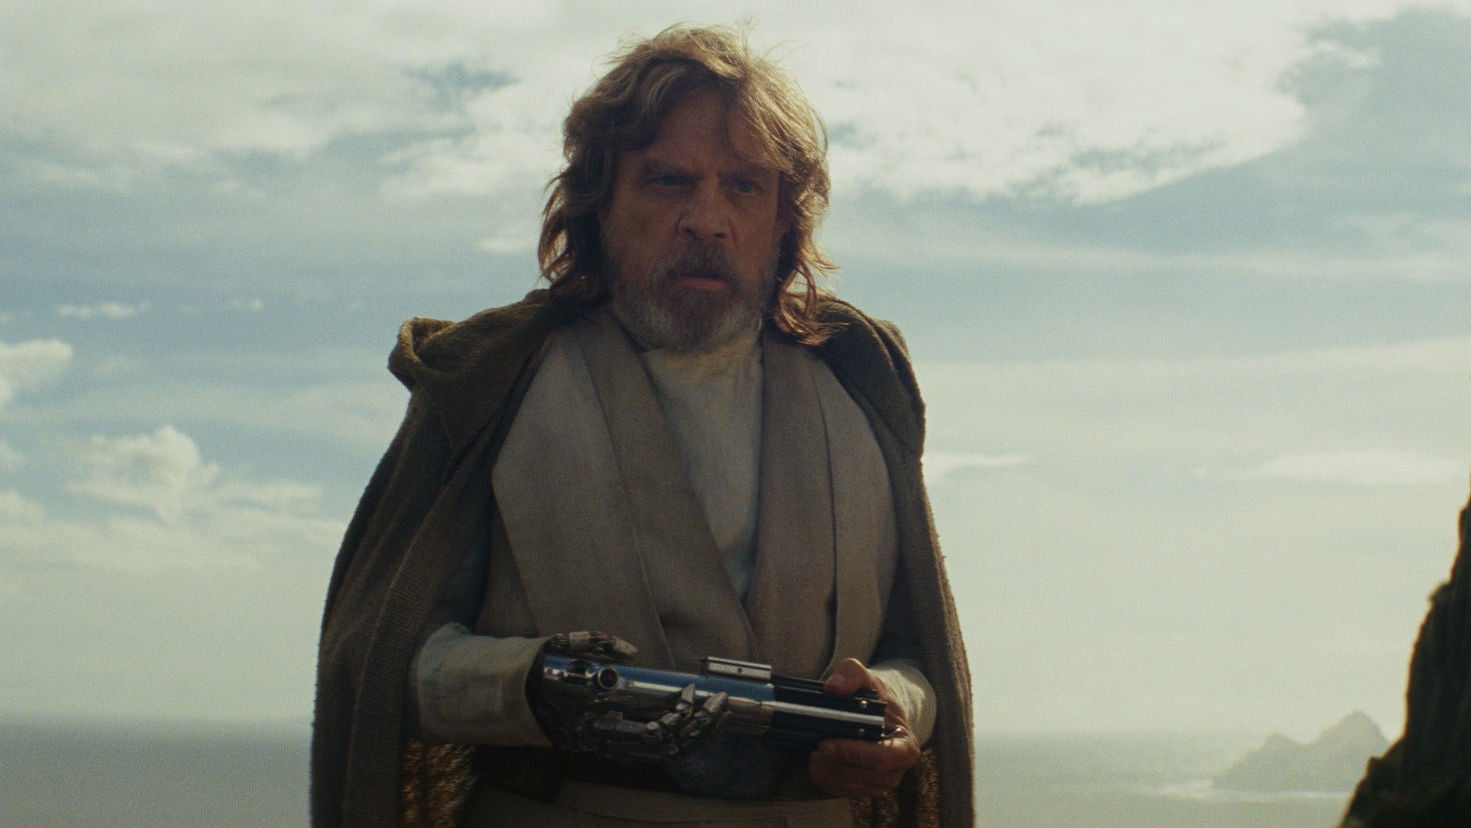 Star Wars: The Last Jedi drops trailer during National Football League  halftime